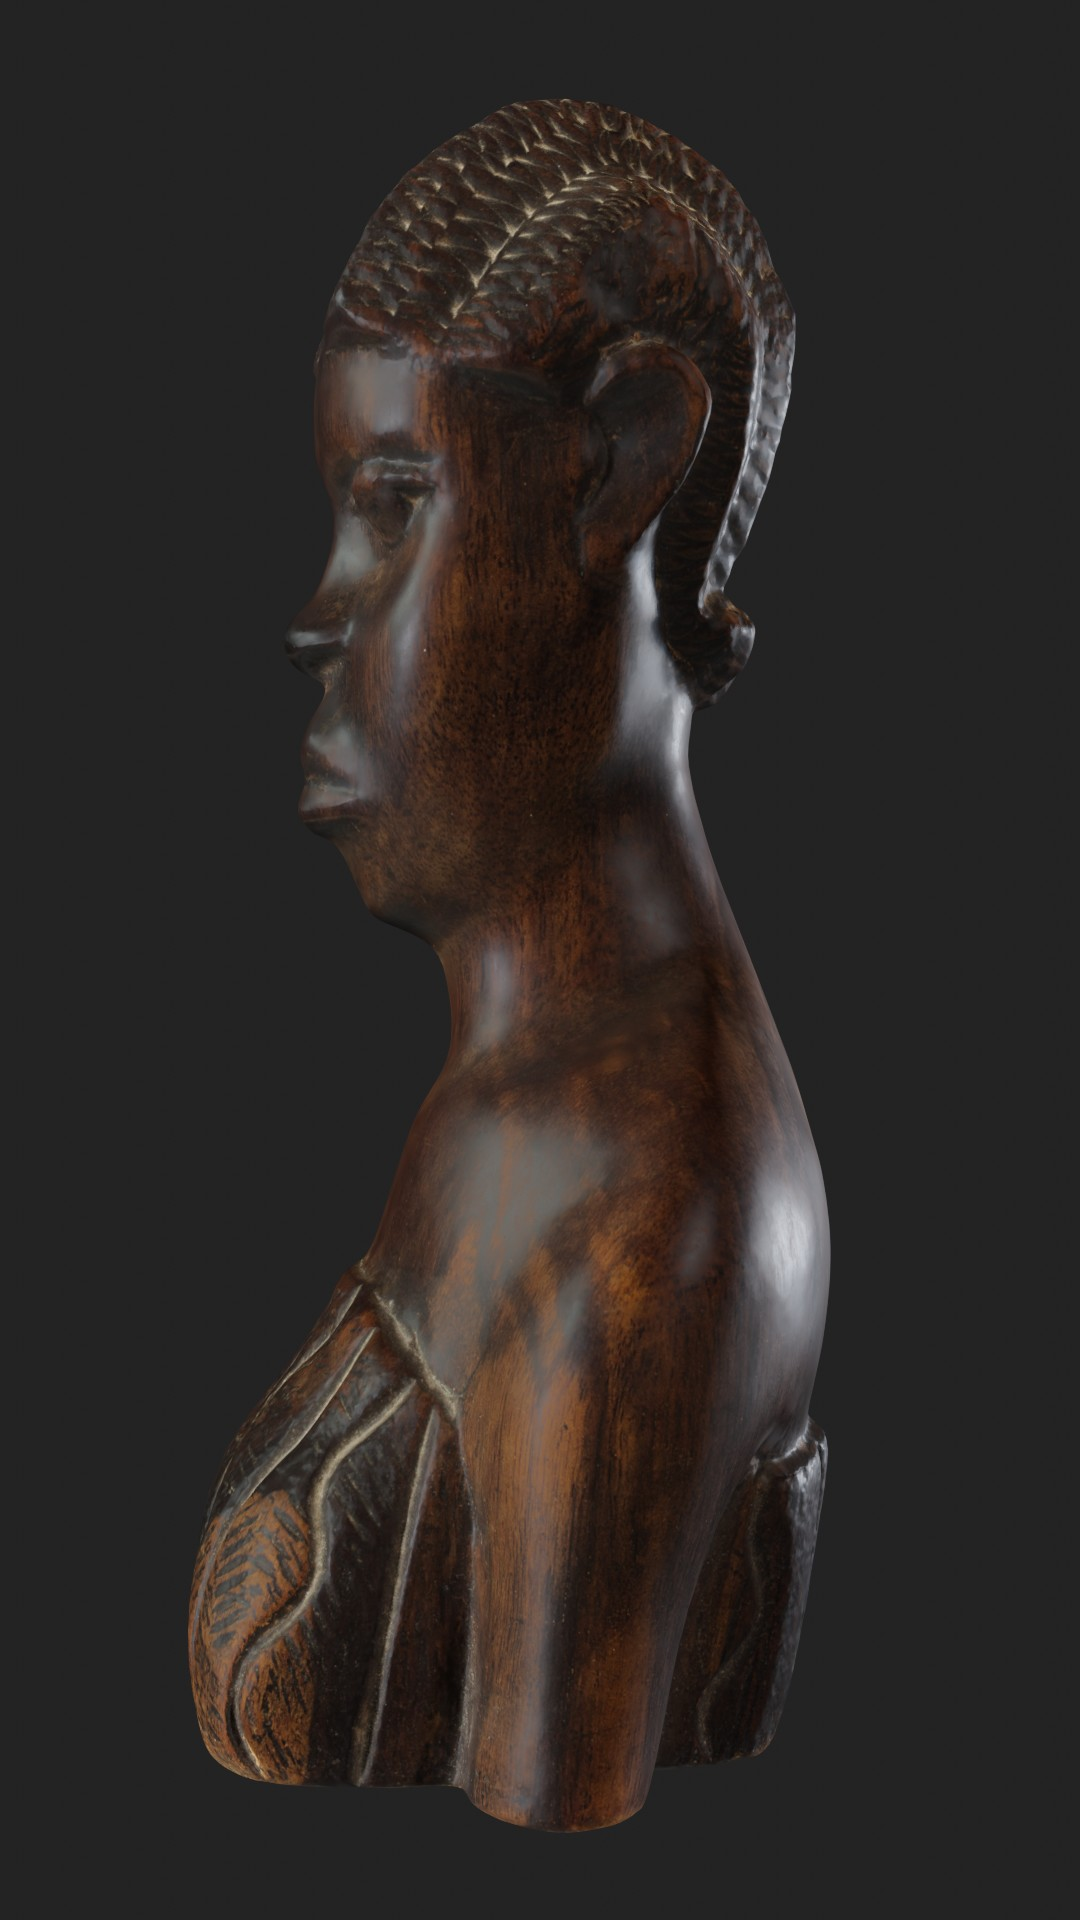 African wooden figurine preview image 4